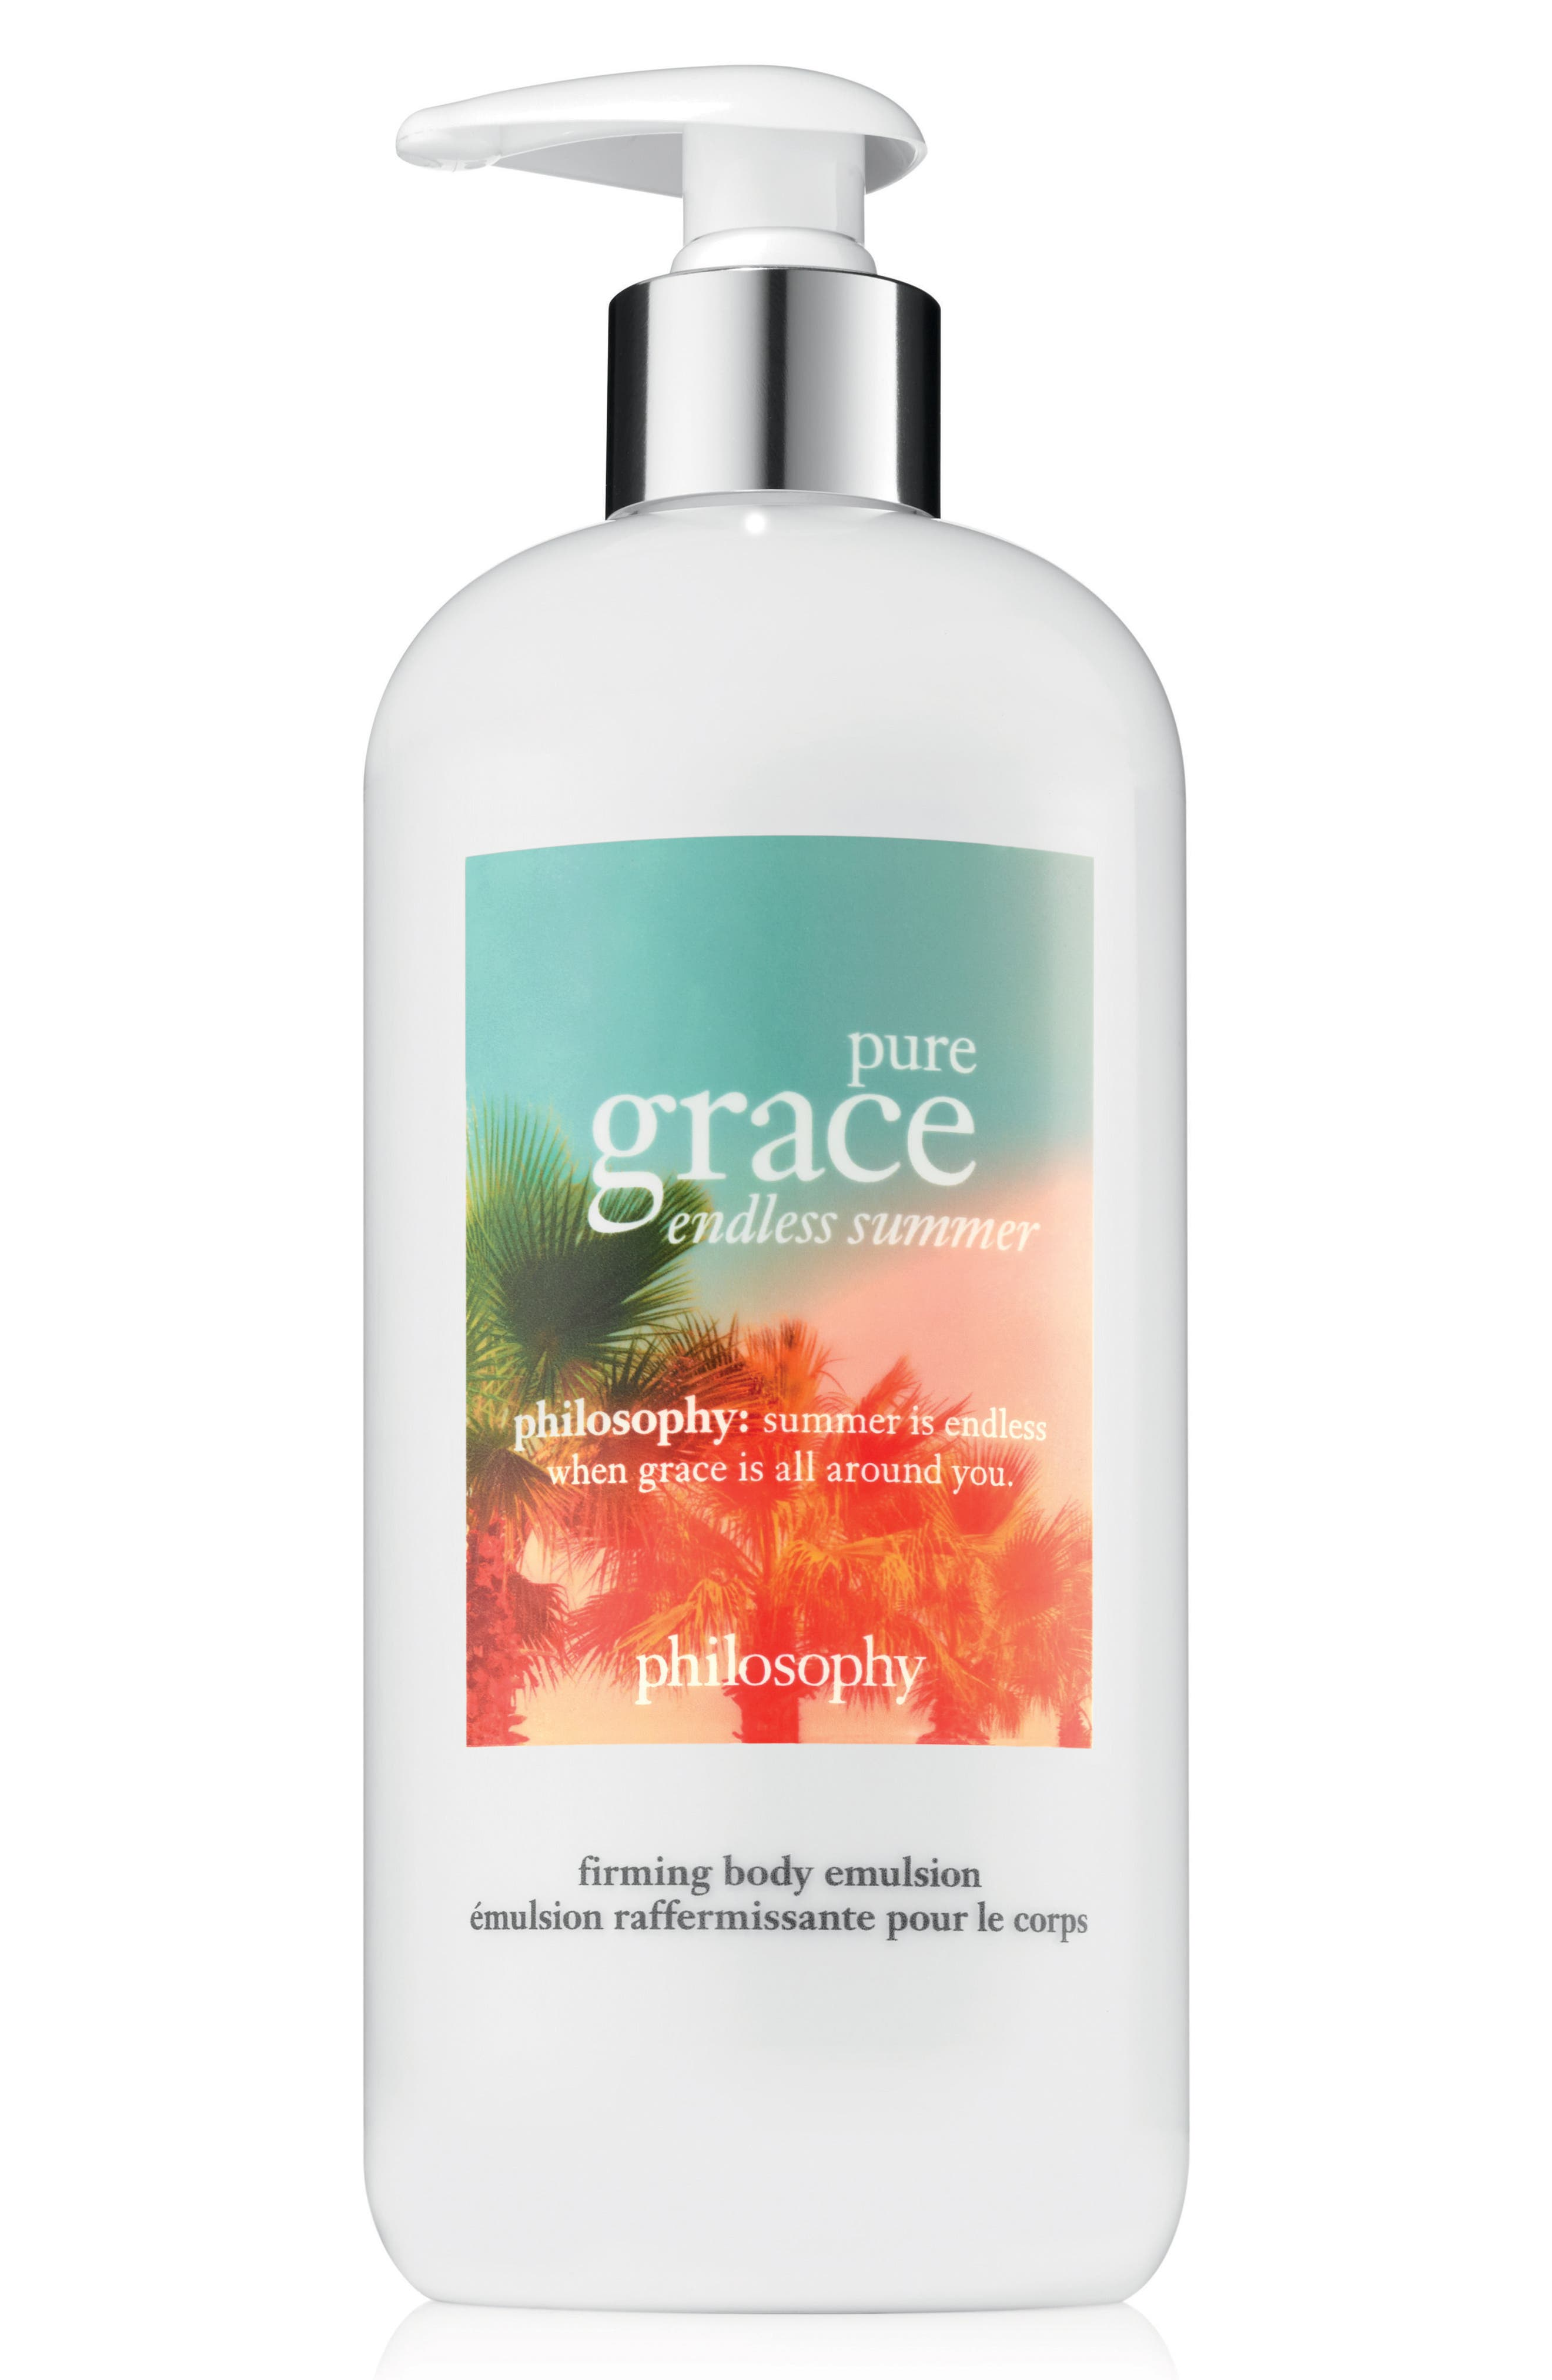 philosophy pure grace endless summer firming body emulsion (Limited Edition)